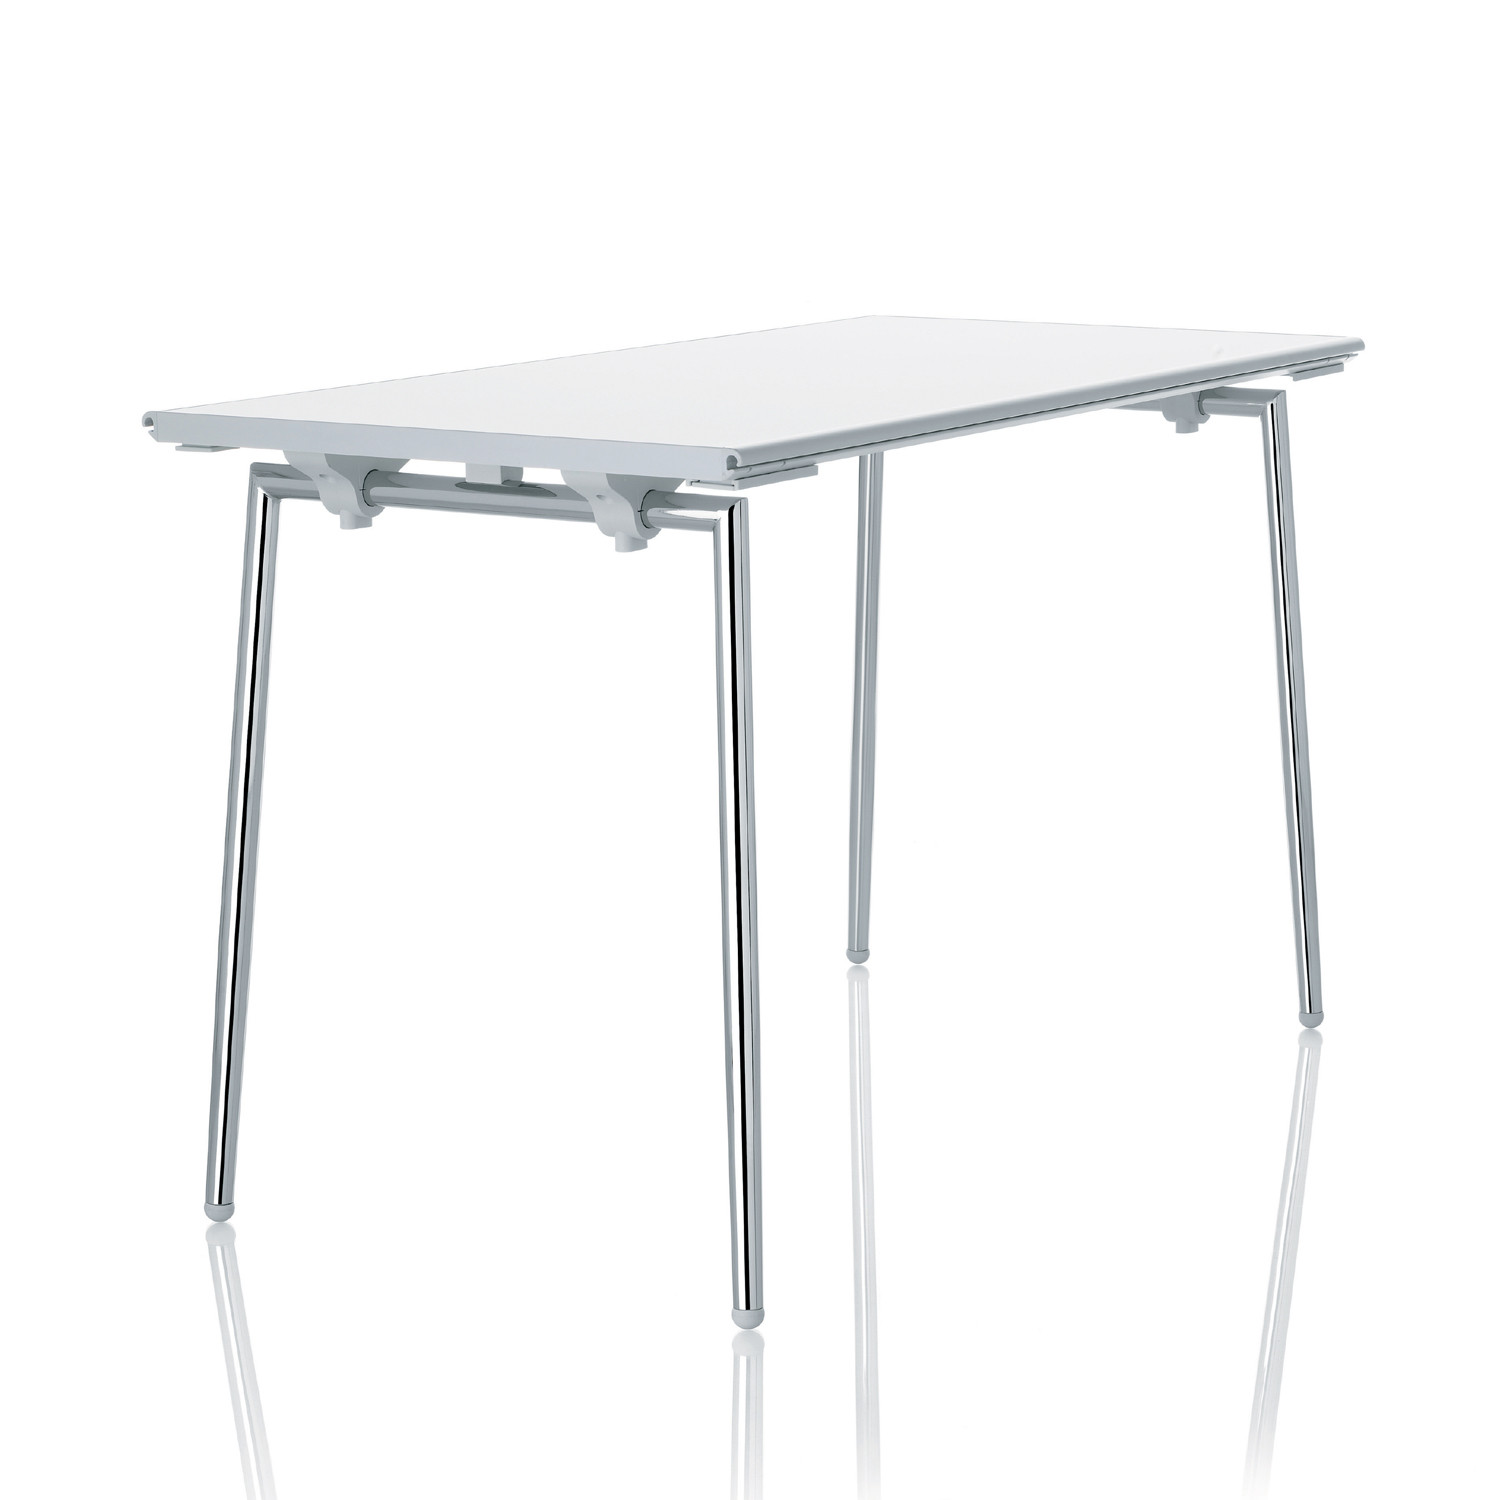 Quickly Folding Table